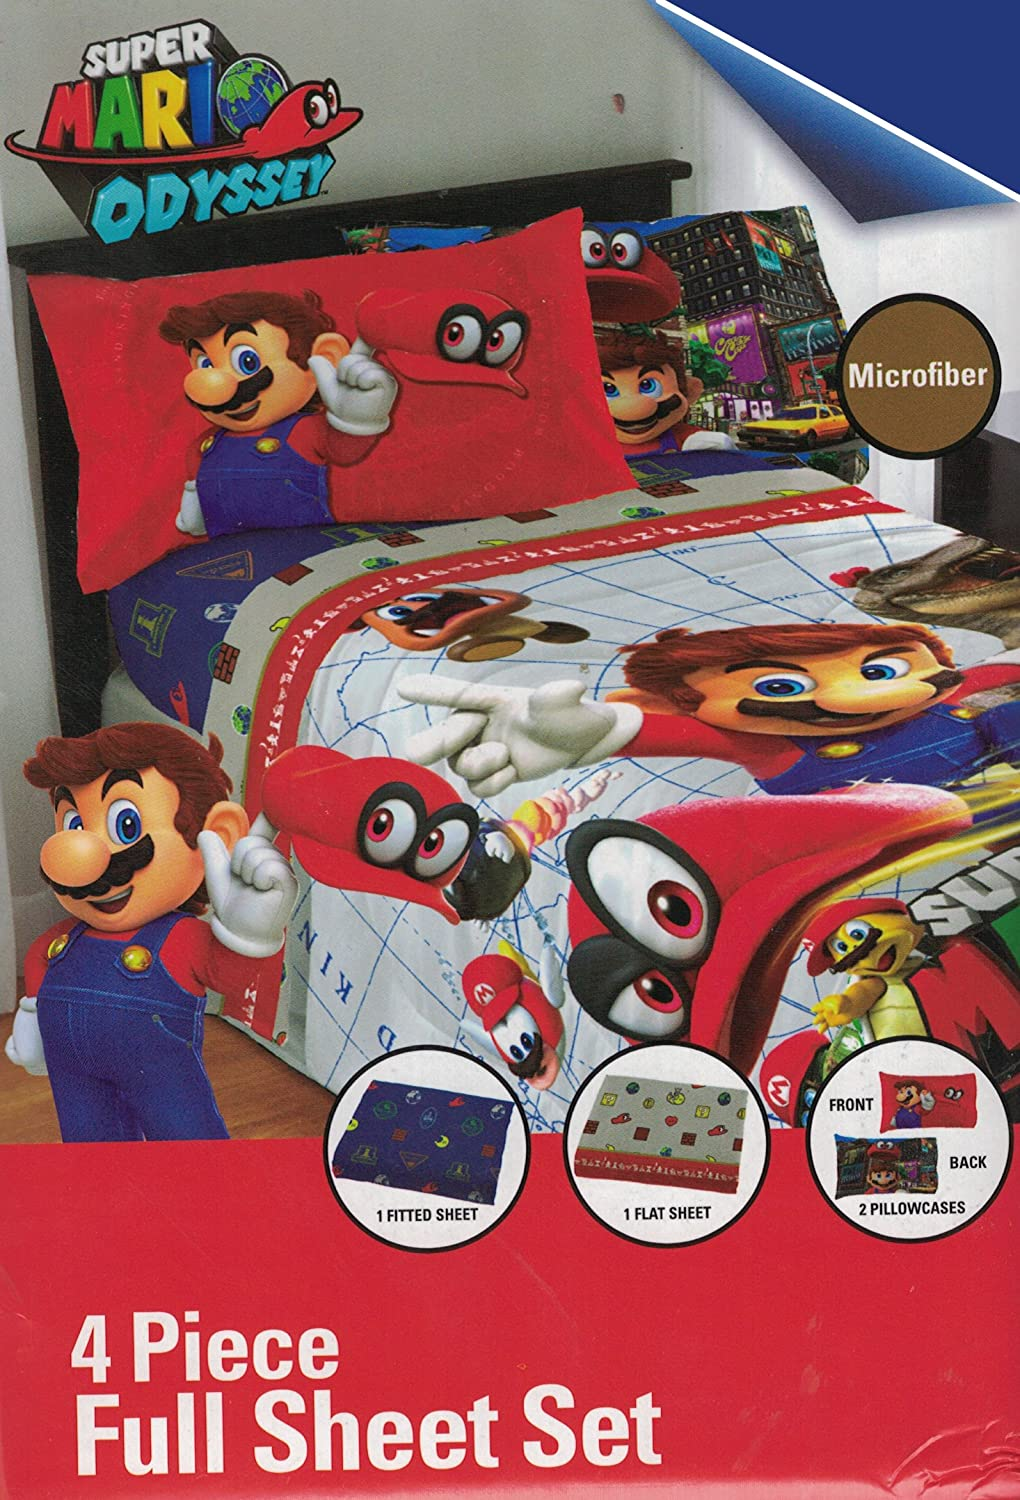 Super Mario Nintendo Odyssey 4-Piece Full Bedding Sheet Set, 2018